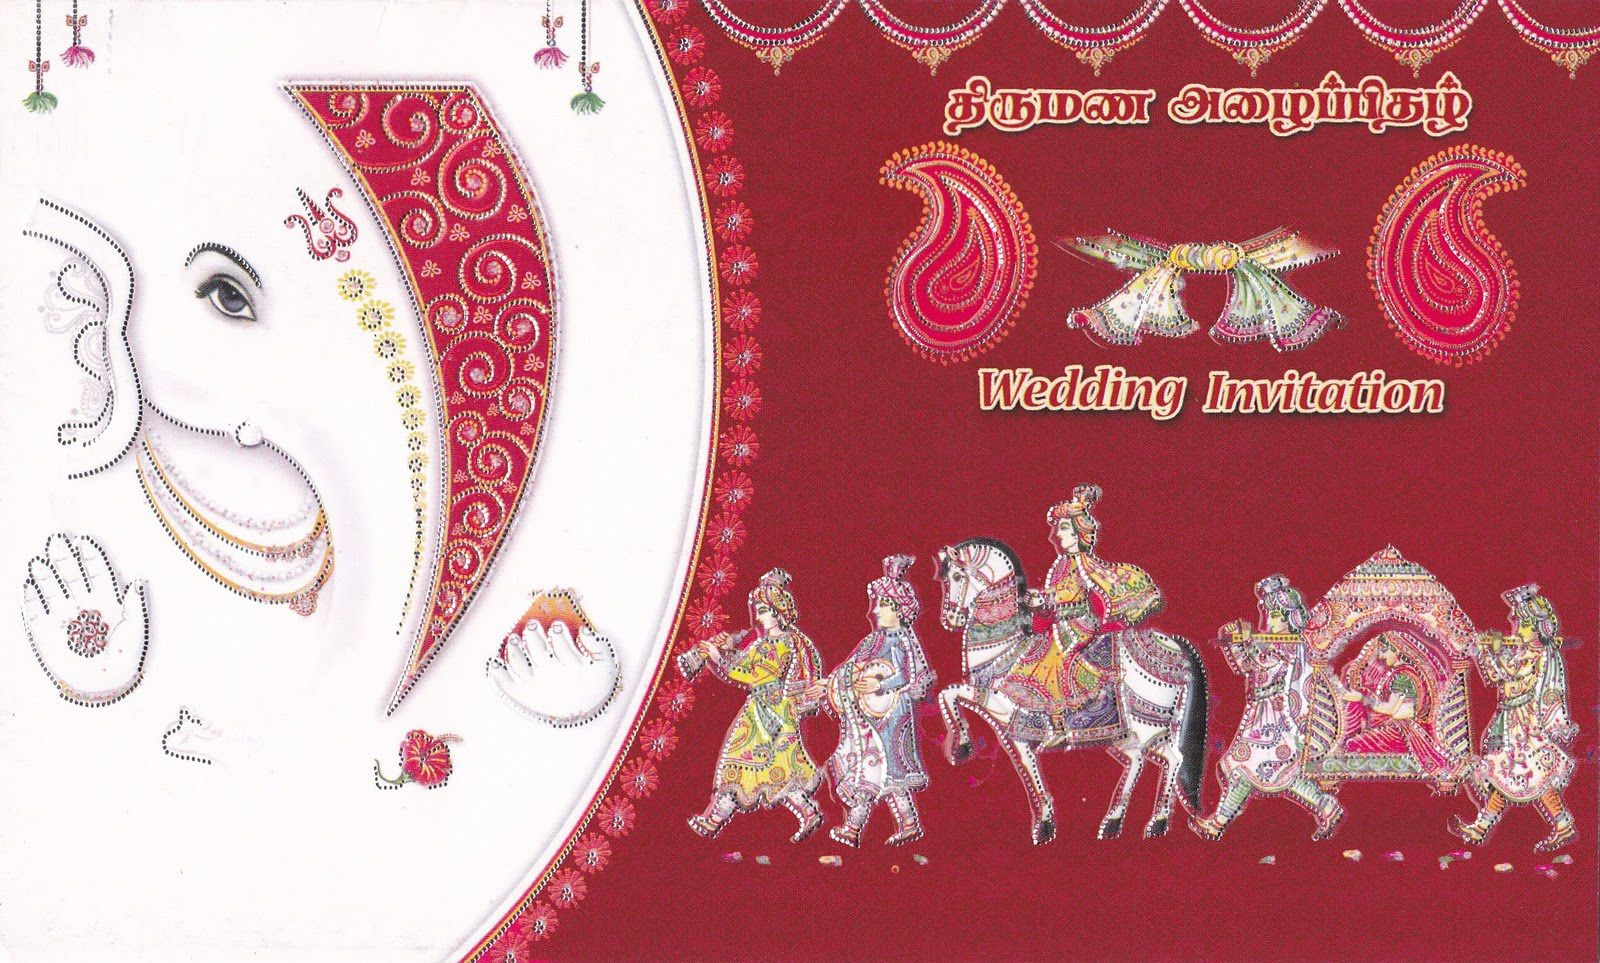 Wedding Cards. Indian Wedding Cards Design | Ideas for the House ...